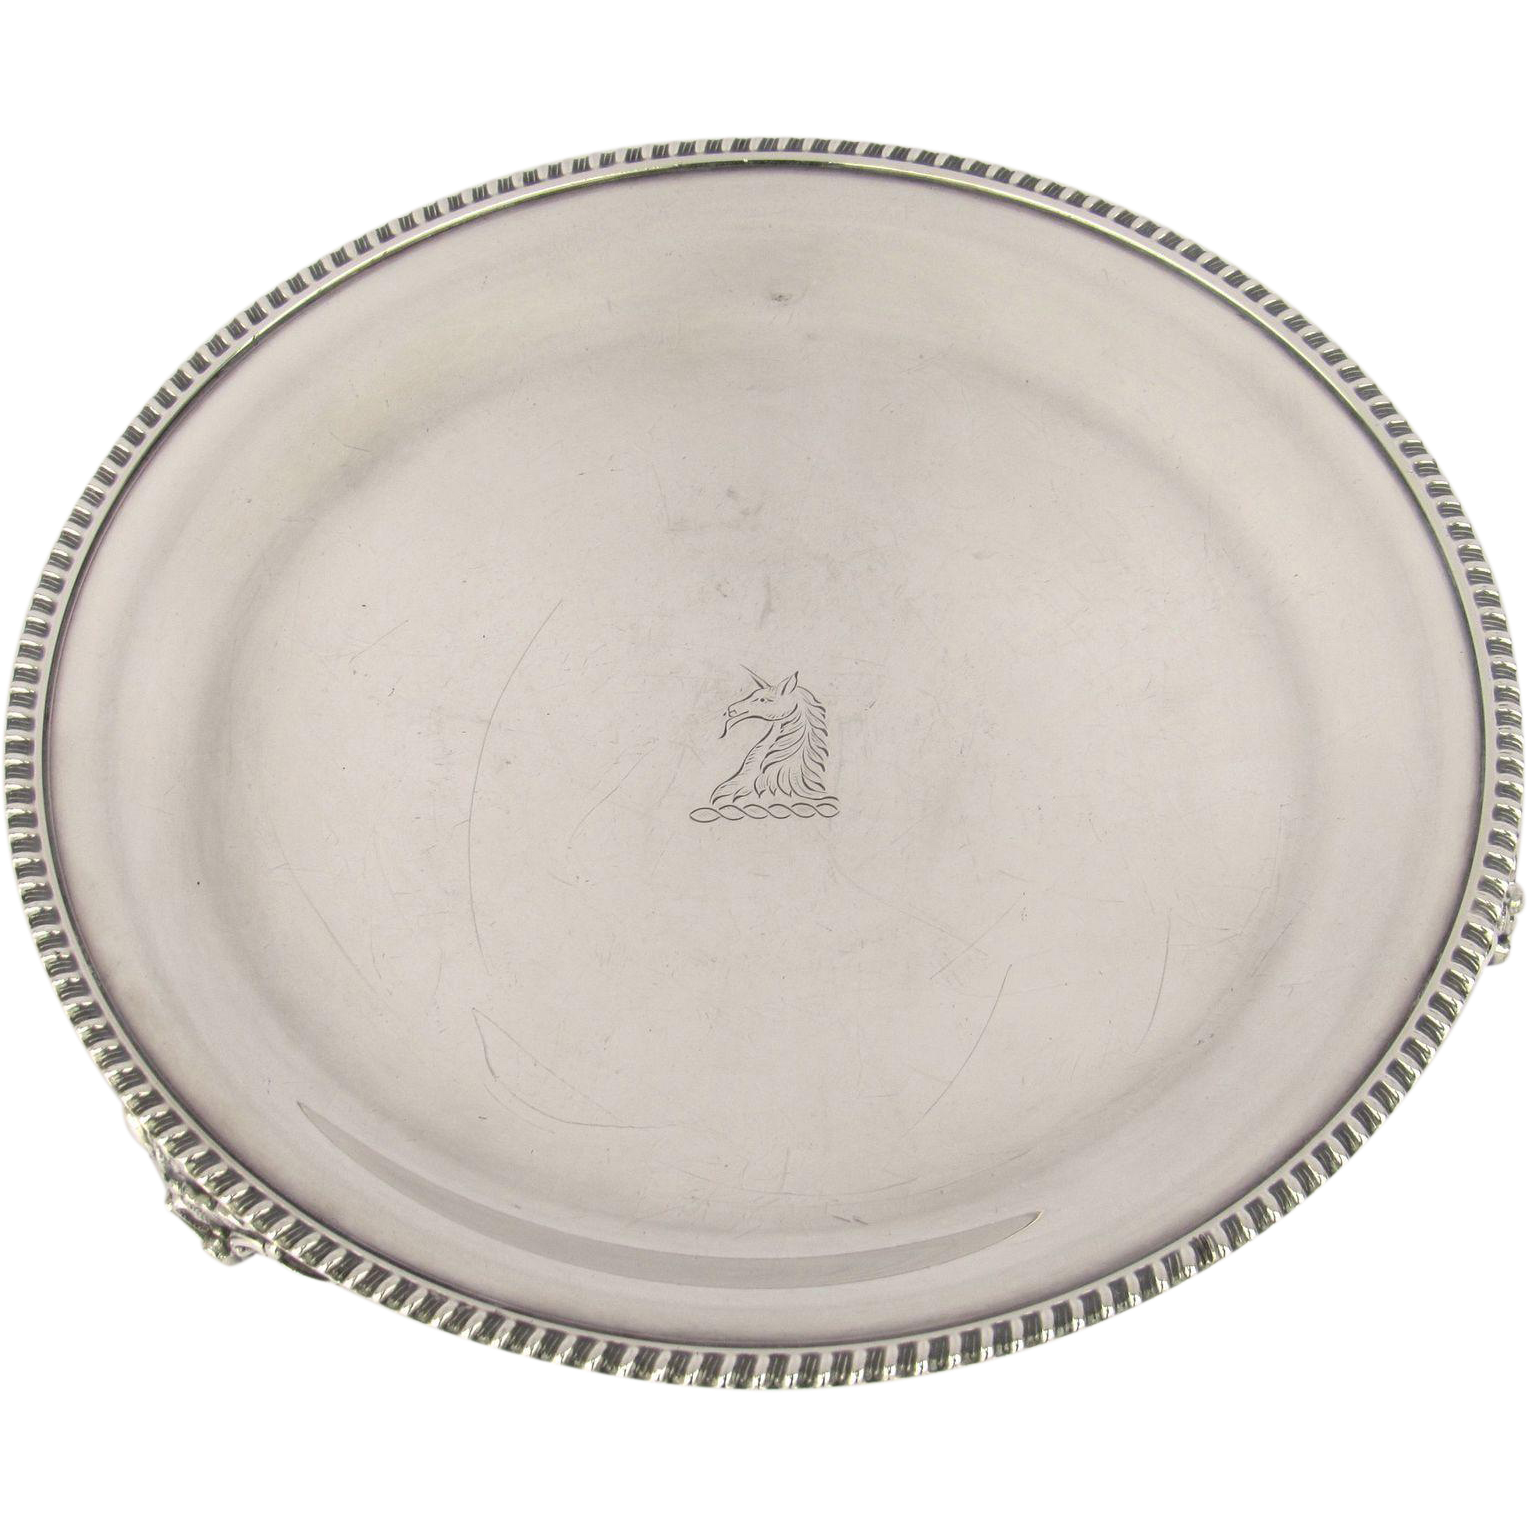 Vintage E. G. Webster & Son, Brooklyn, New York, USA Silver Plated Small Round Salver Tray